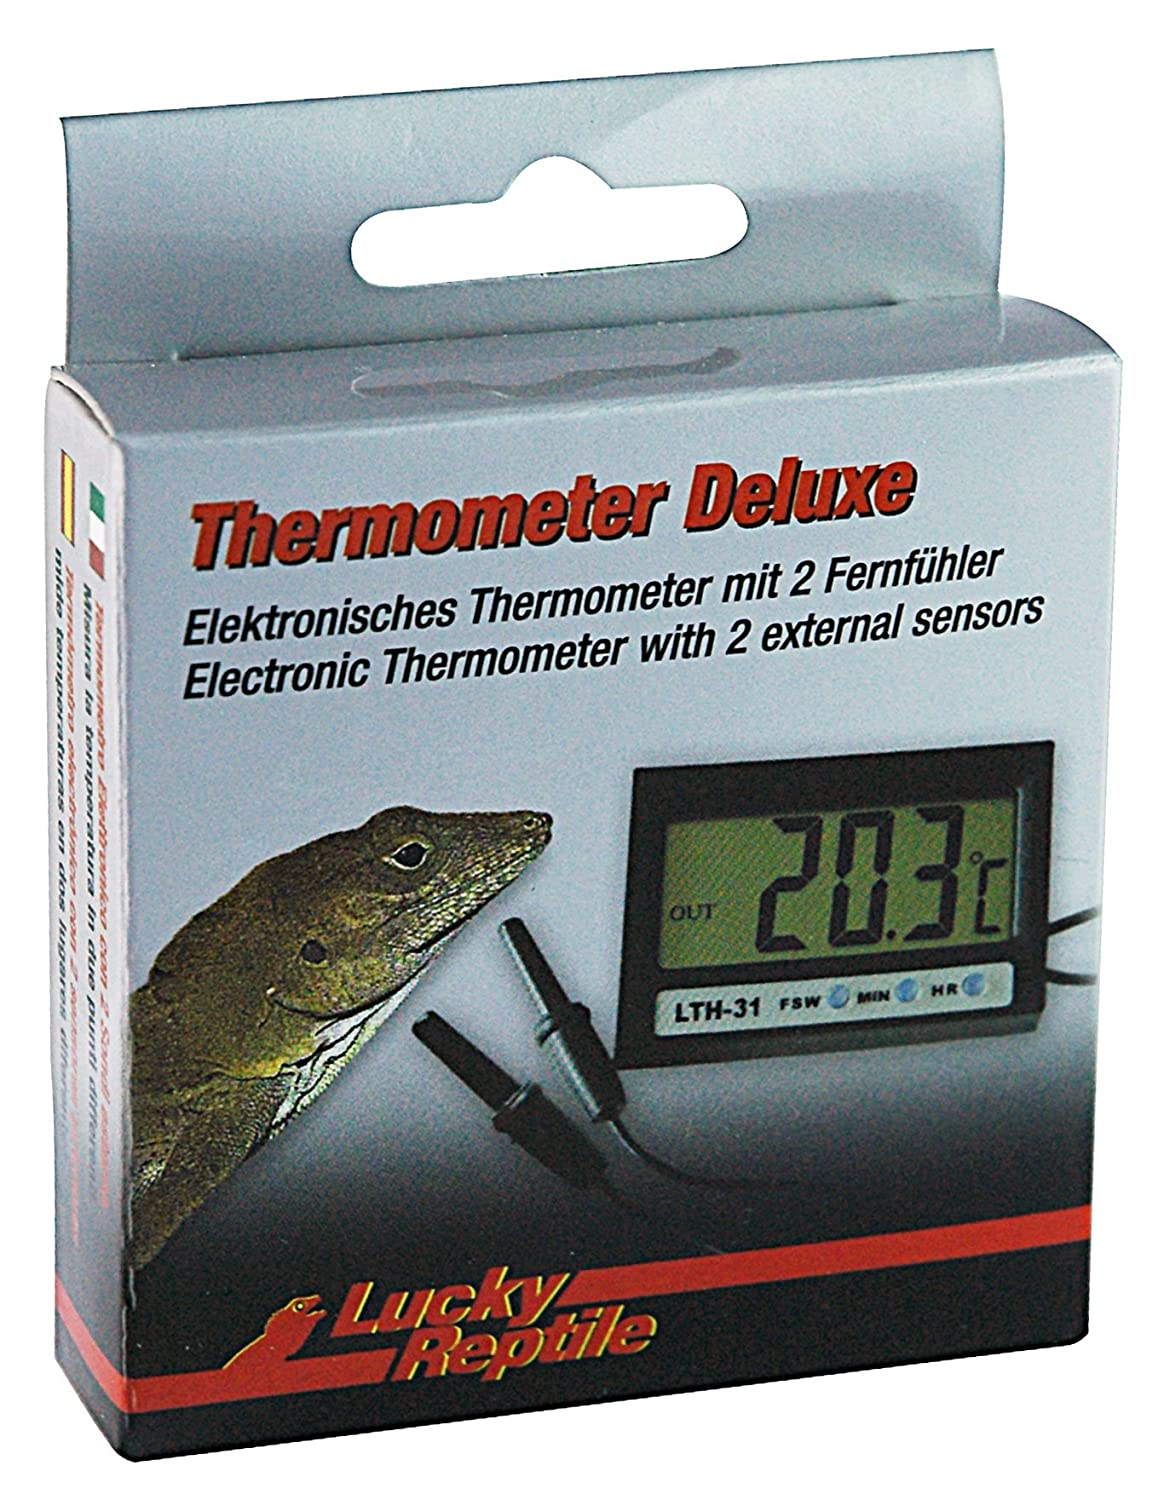 (2 Pack) Lucky Reptile - Thermometer Deluxe LTH-31